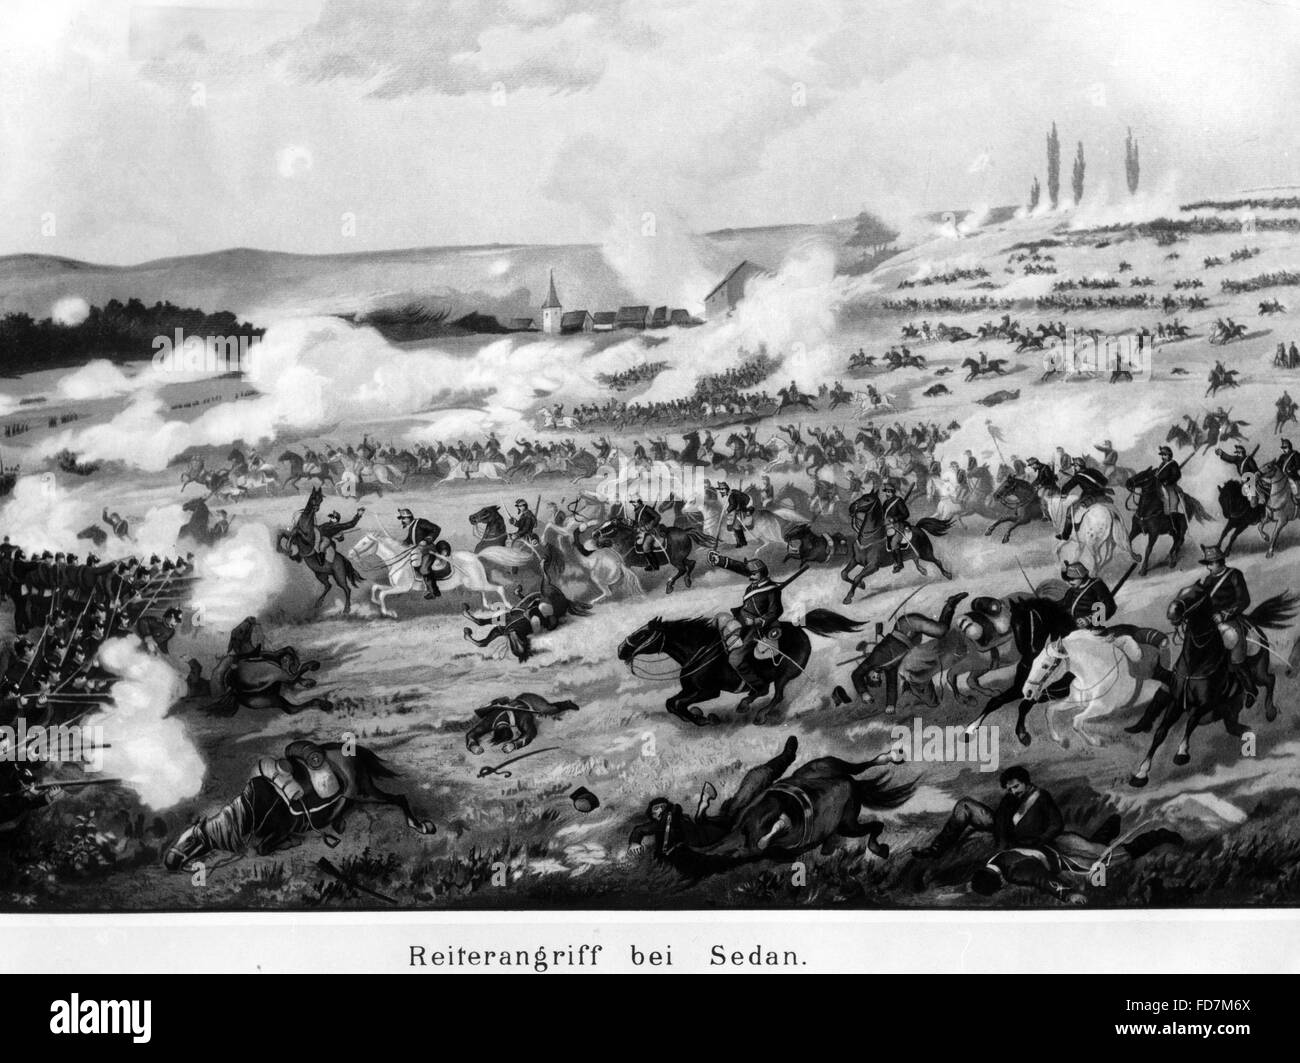 Cavalry charge at Sedan, 1870 - Stock Image